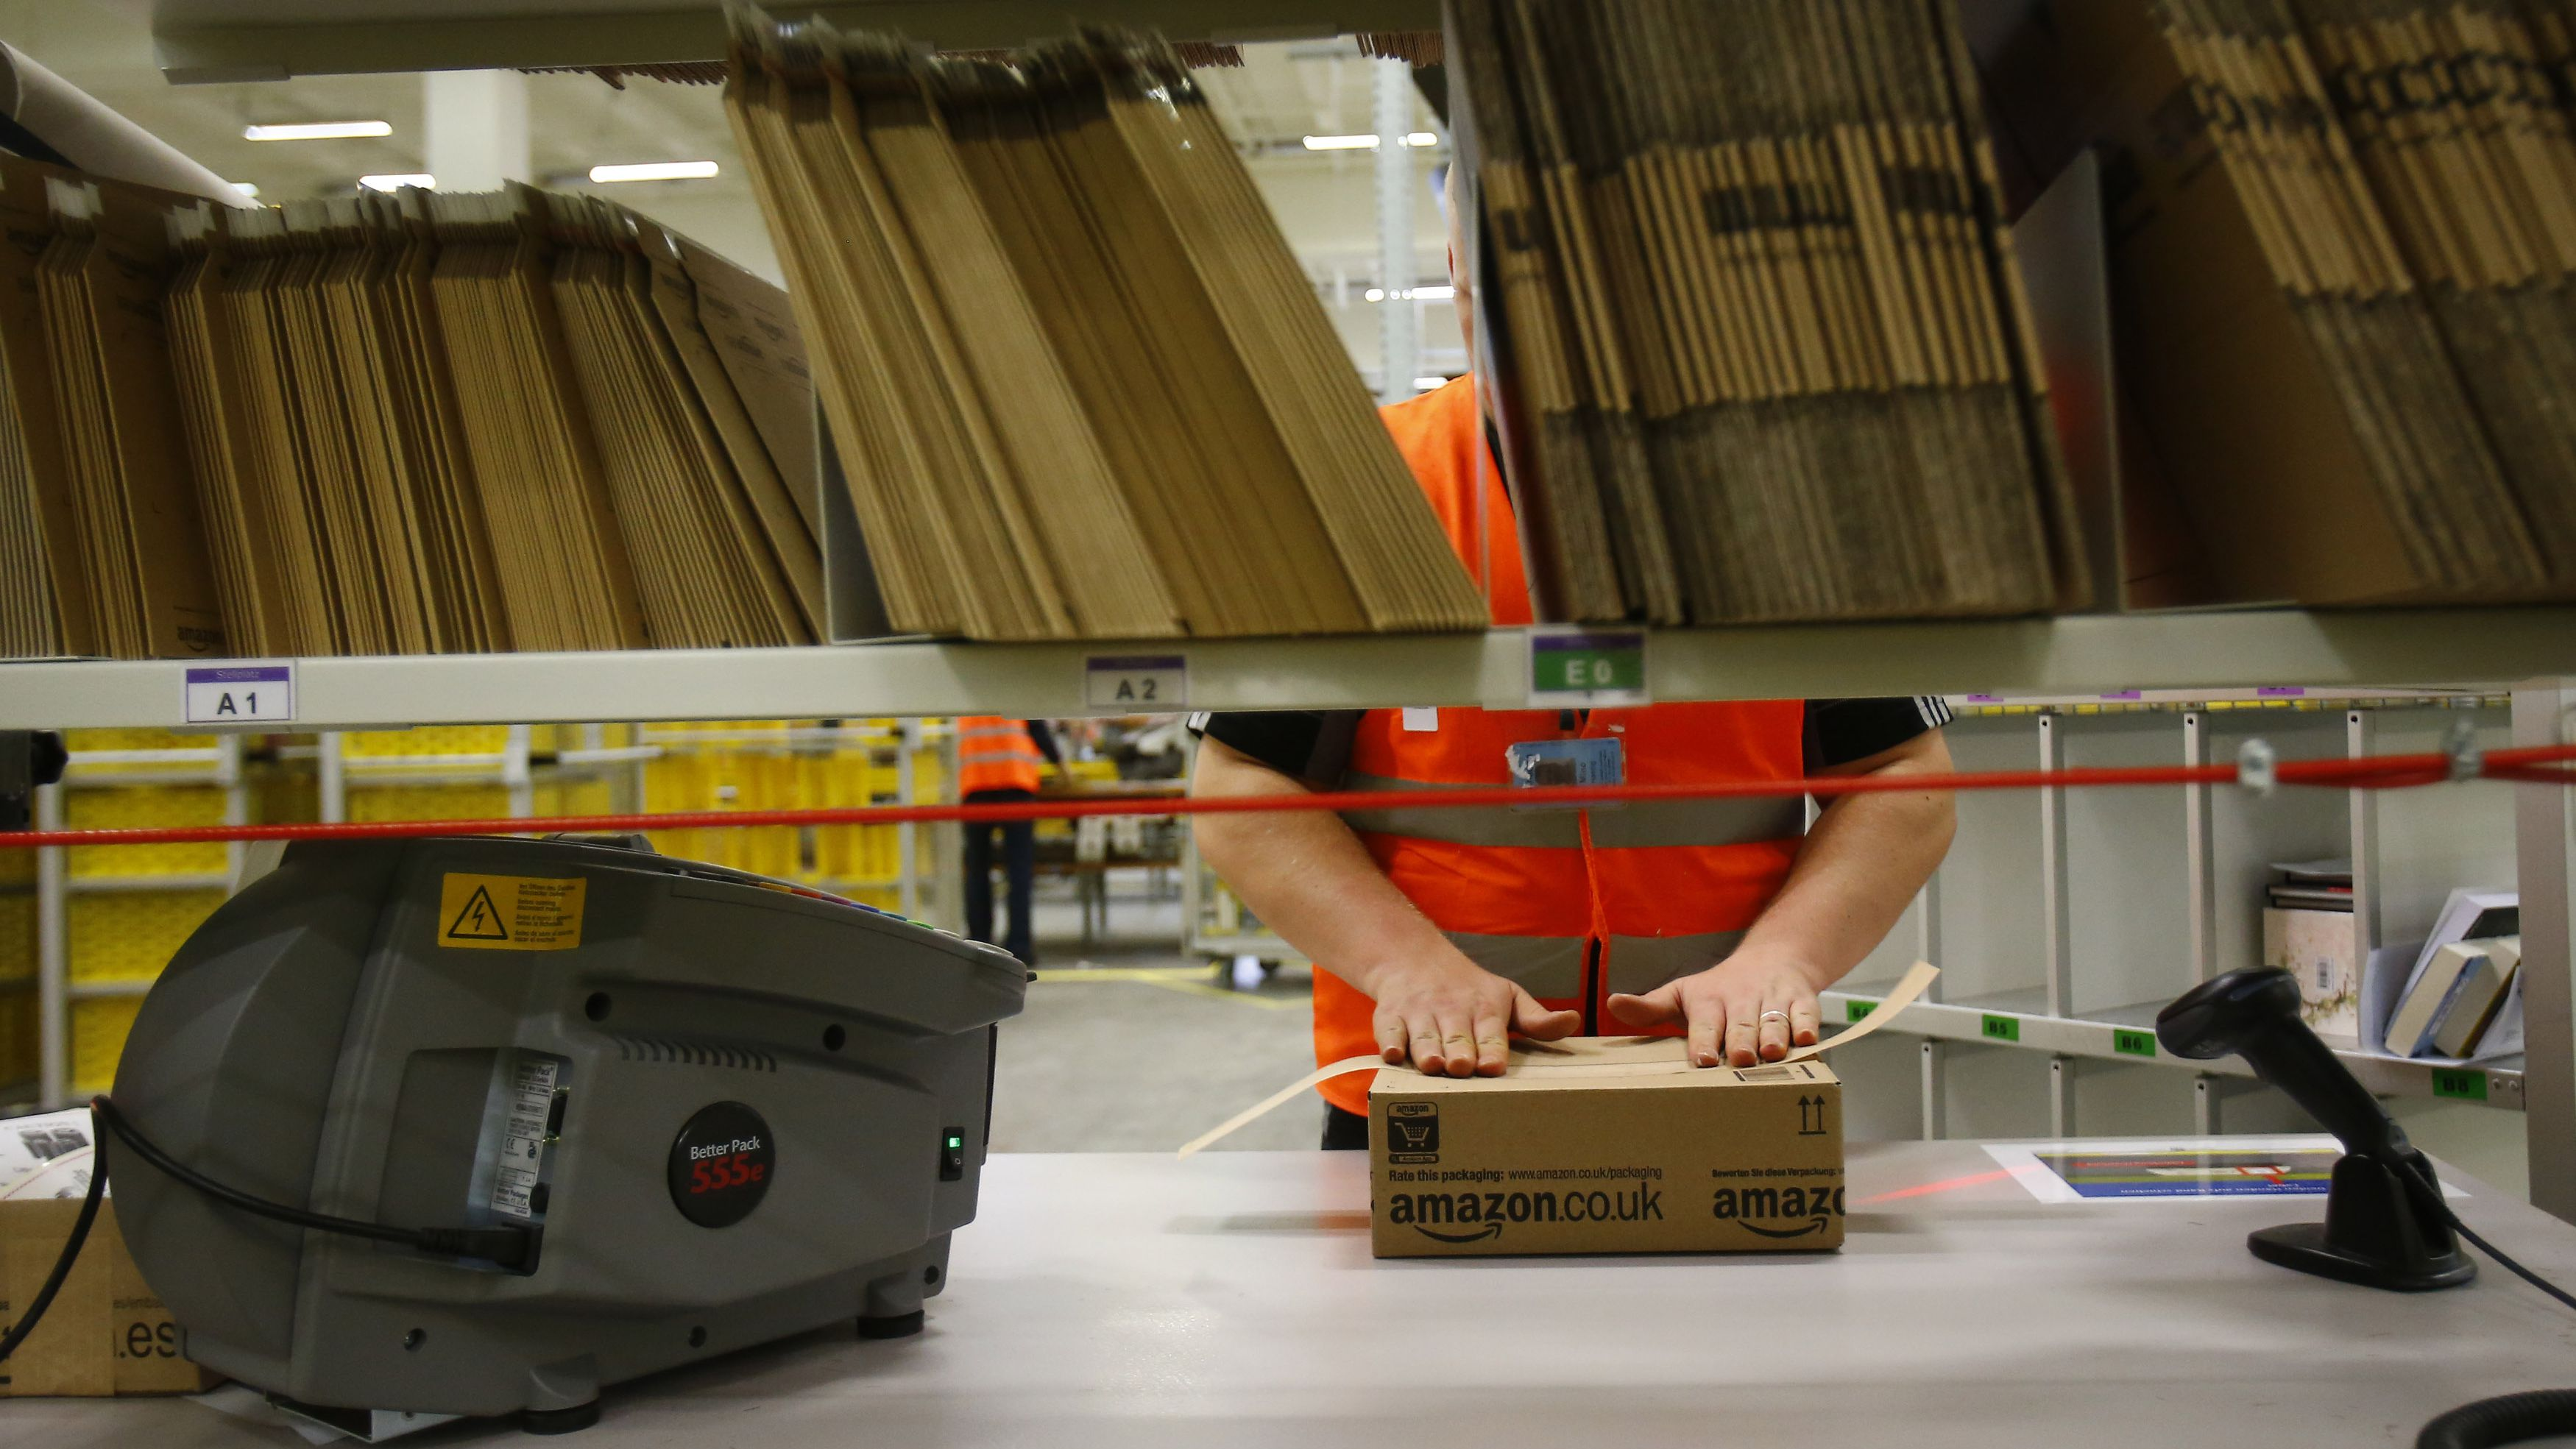 "A worker handles items for delivery at Amazon's new distribution center in Brieselang, near Berlin November 28, 2013. Germany's antitrust watchdog has dropped an investigation into Amazon after the world's biggest Internet retailer agreed to stop forcing third-party merchants to offer their cheapest price when selling products on its platform. Andreas Mundt, the president of the German cartel office, said it had decided to set aside the case against Amazon after the company agreed to cancel that demand from the terms and conditions of its contracts with merchants. ""Making pricing demands to your own competitors cannot be justified in any circumstances, not even with the undeniable advantages of an online market place."" REUTERS/Tobias Schwarz (GERMANY - Tags: BUSINESS EMPLOYMENT)"